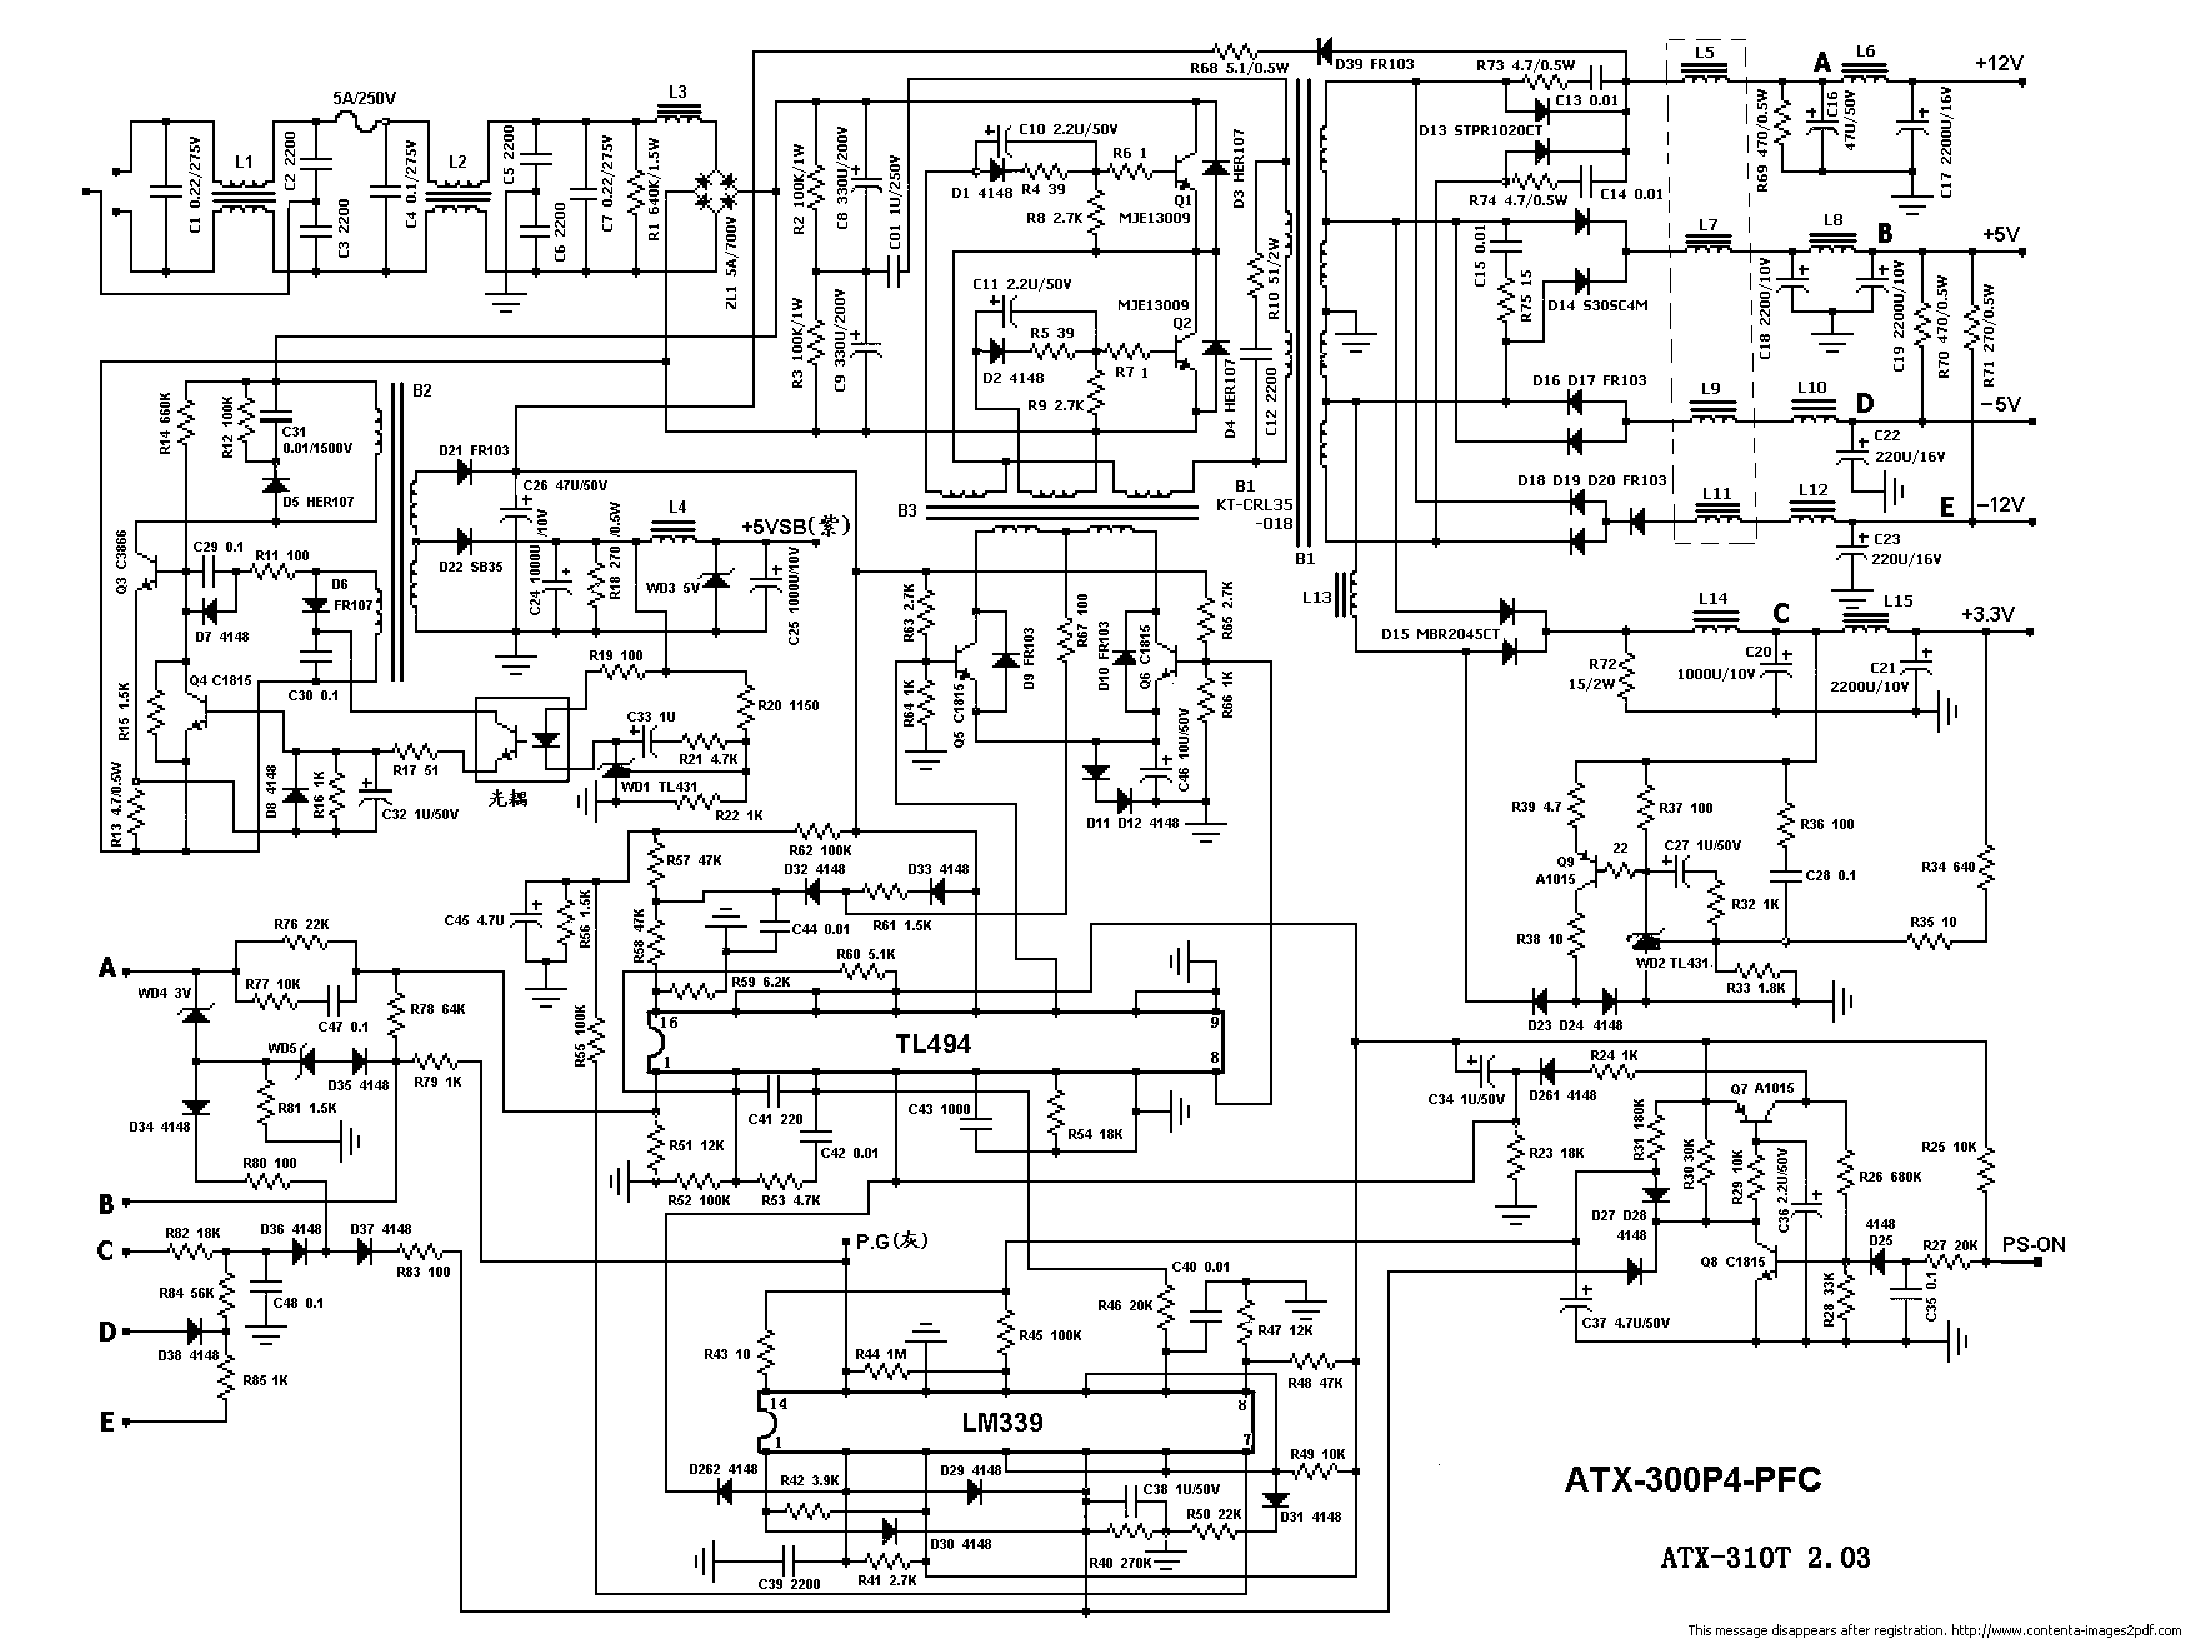 medium resolution of atx 300p4 pfc pc power supply sch manual de servicio descarga gratuita inside wiring diagram